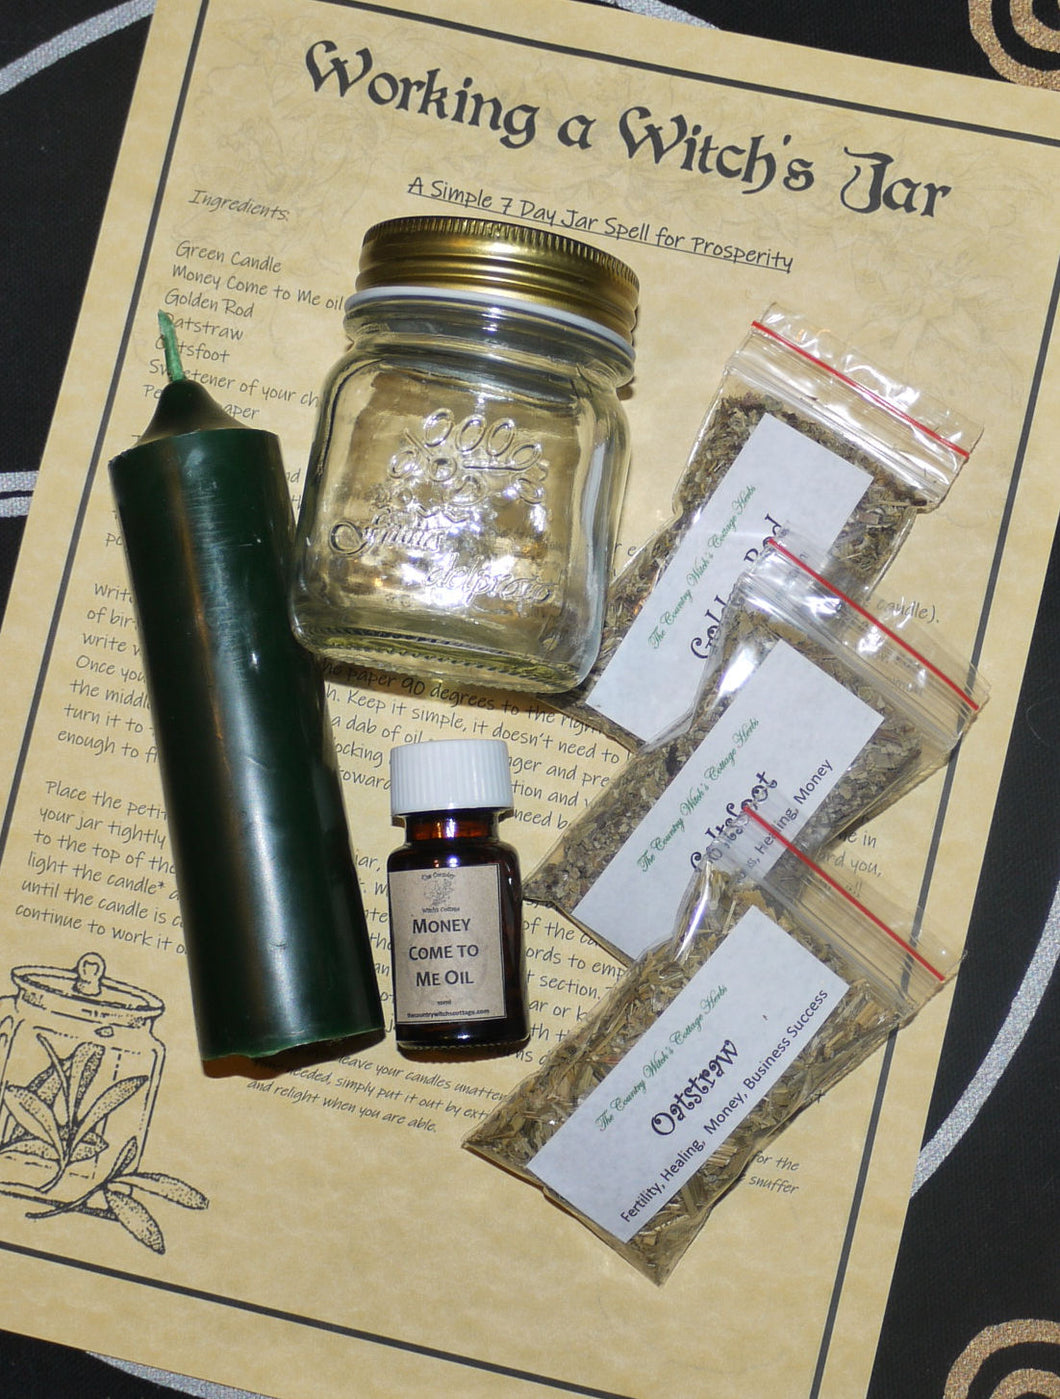 Working tjhe Witch's Jar Prosperity Kit